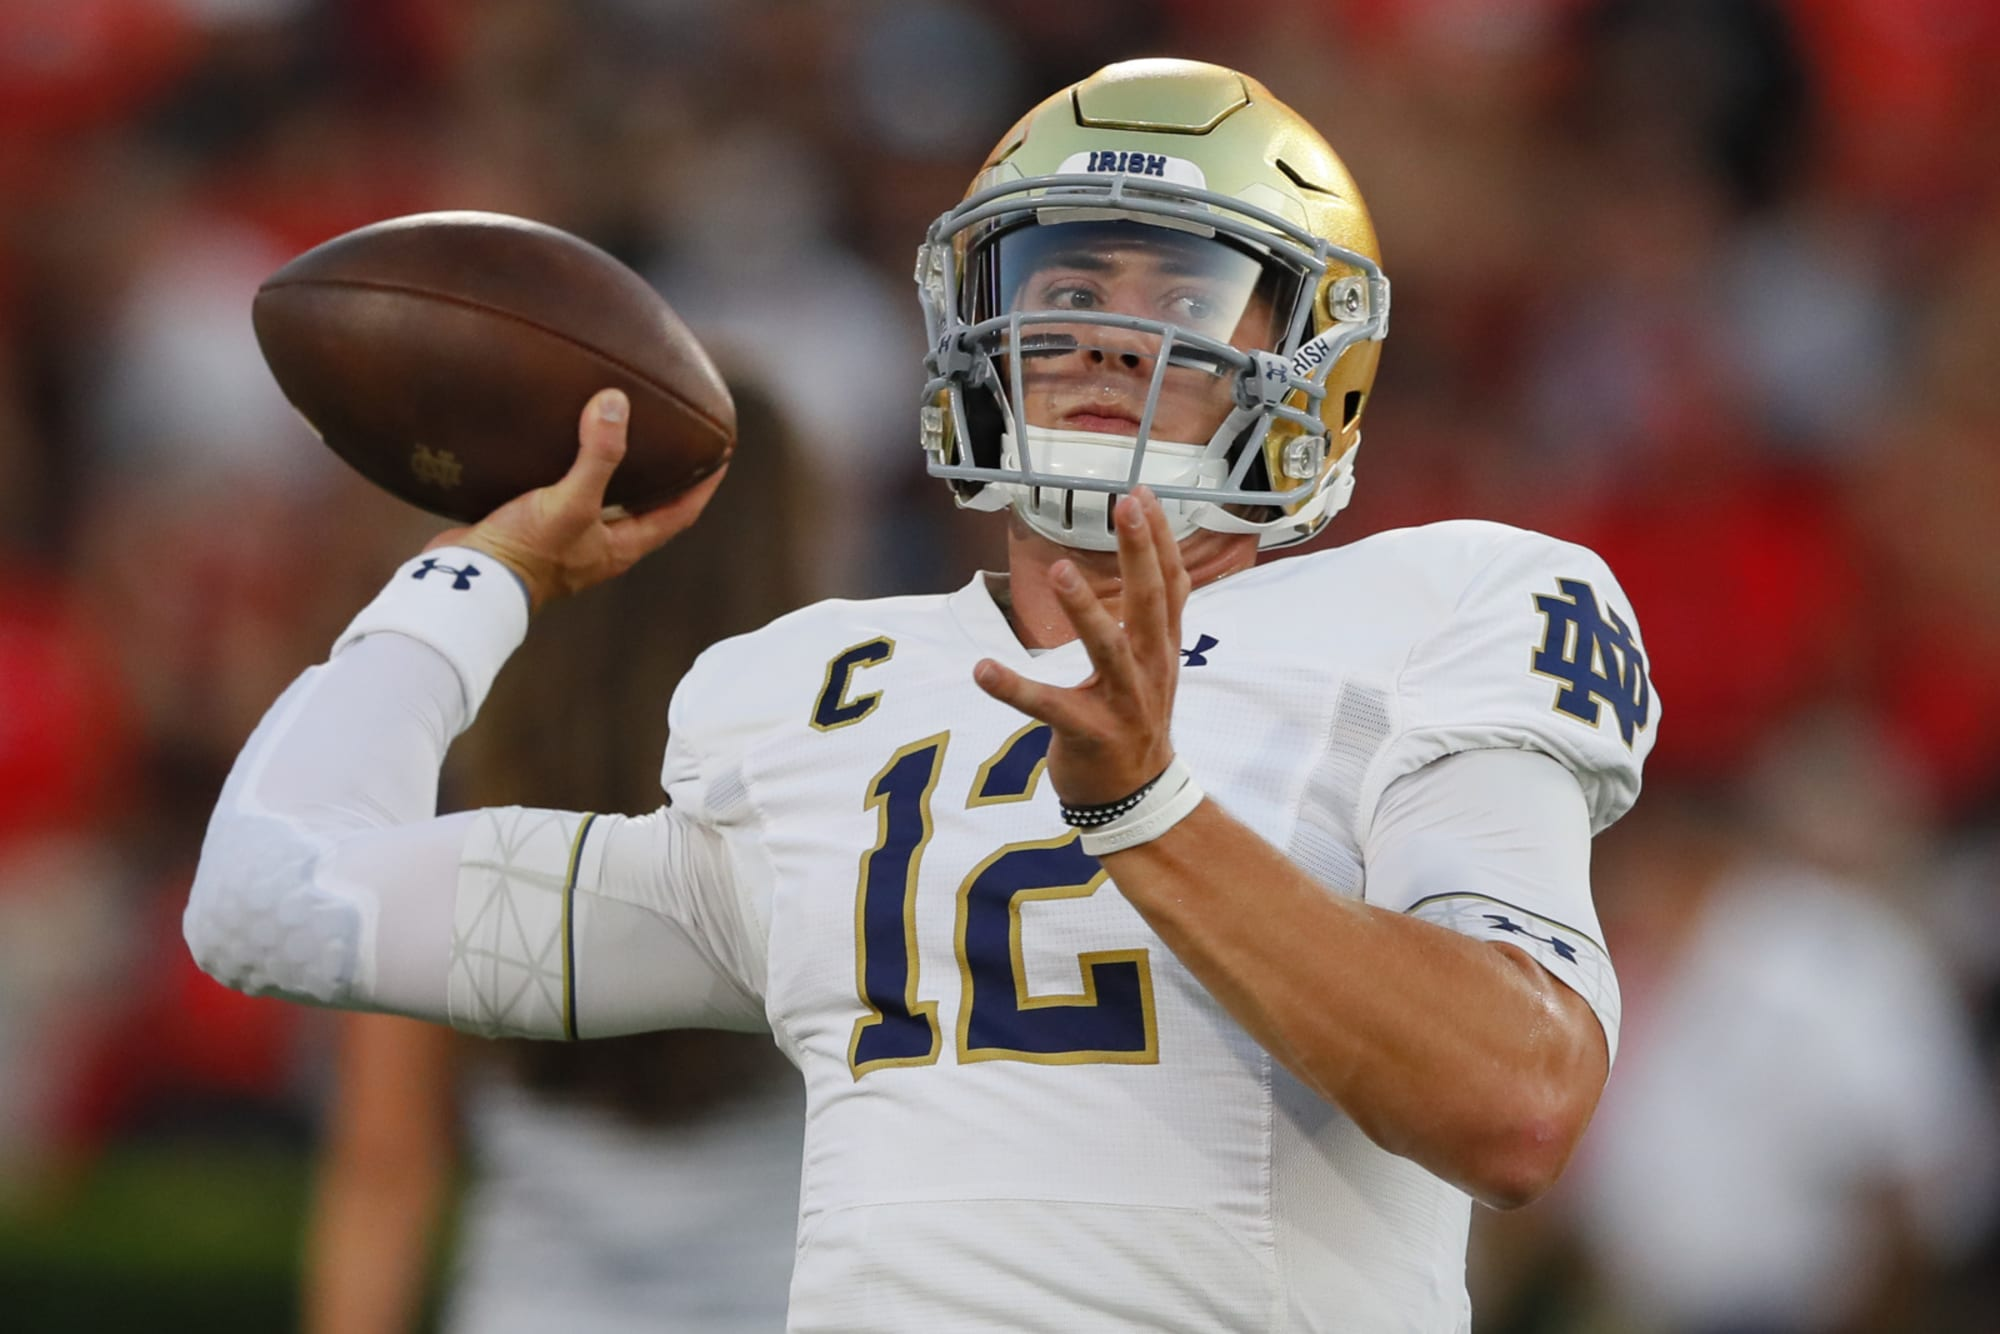 Notre Dame football: Ian Book one win away from school record